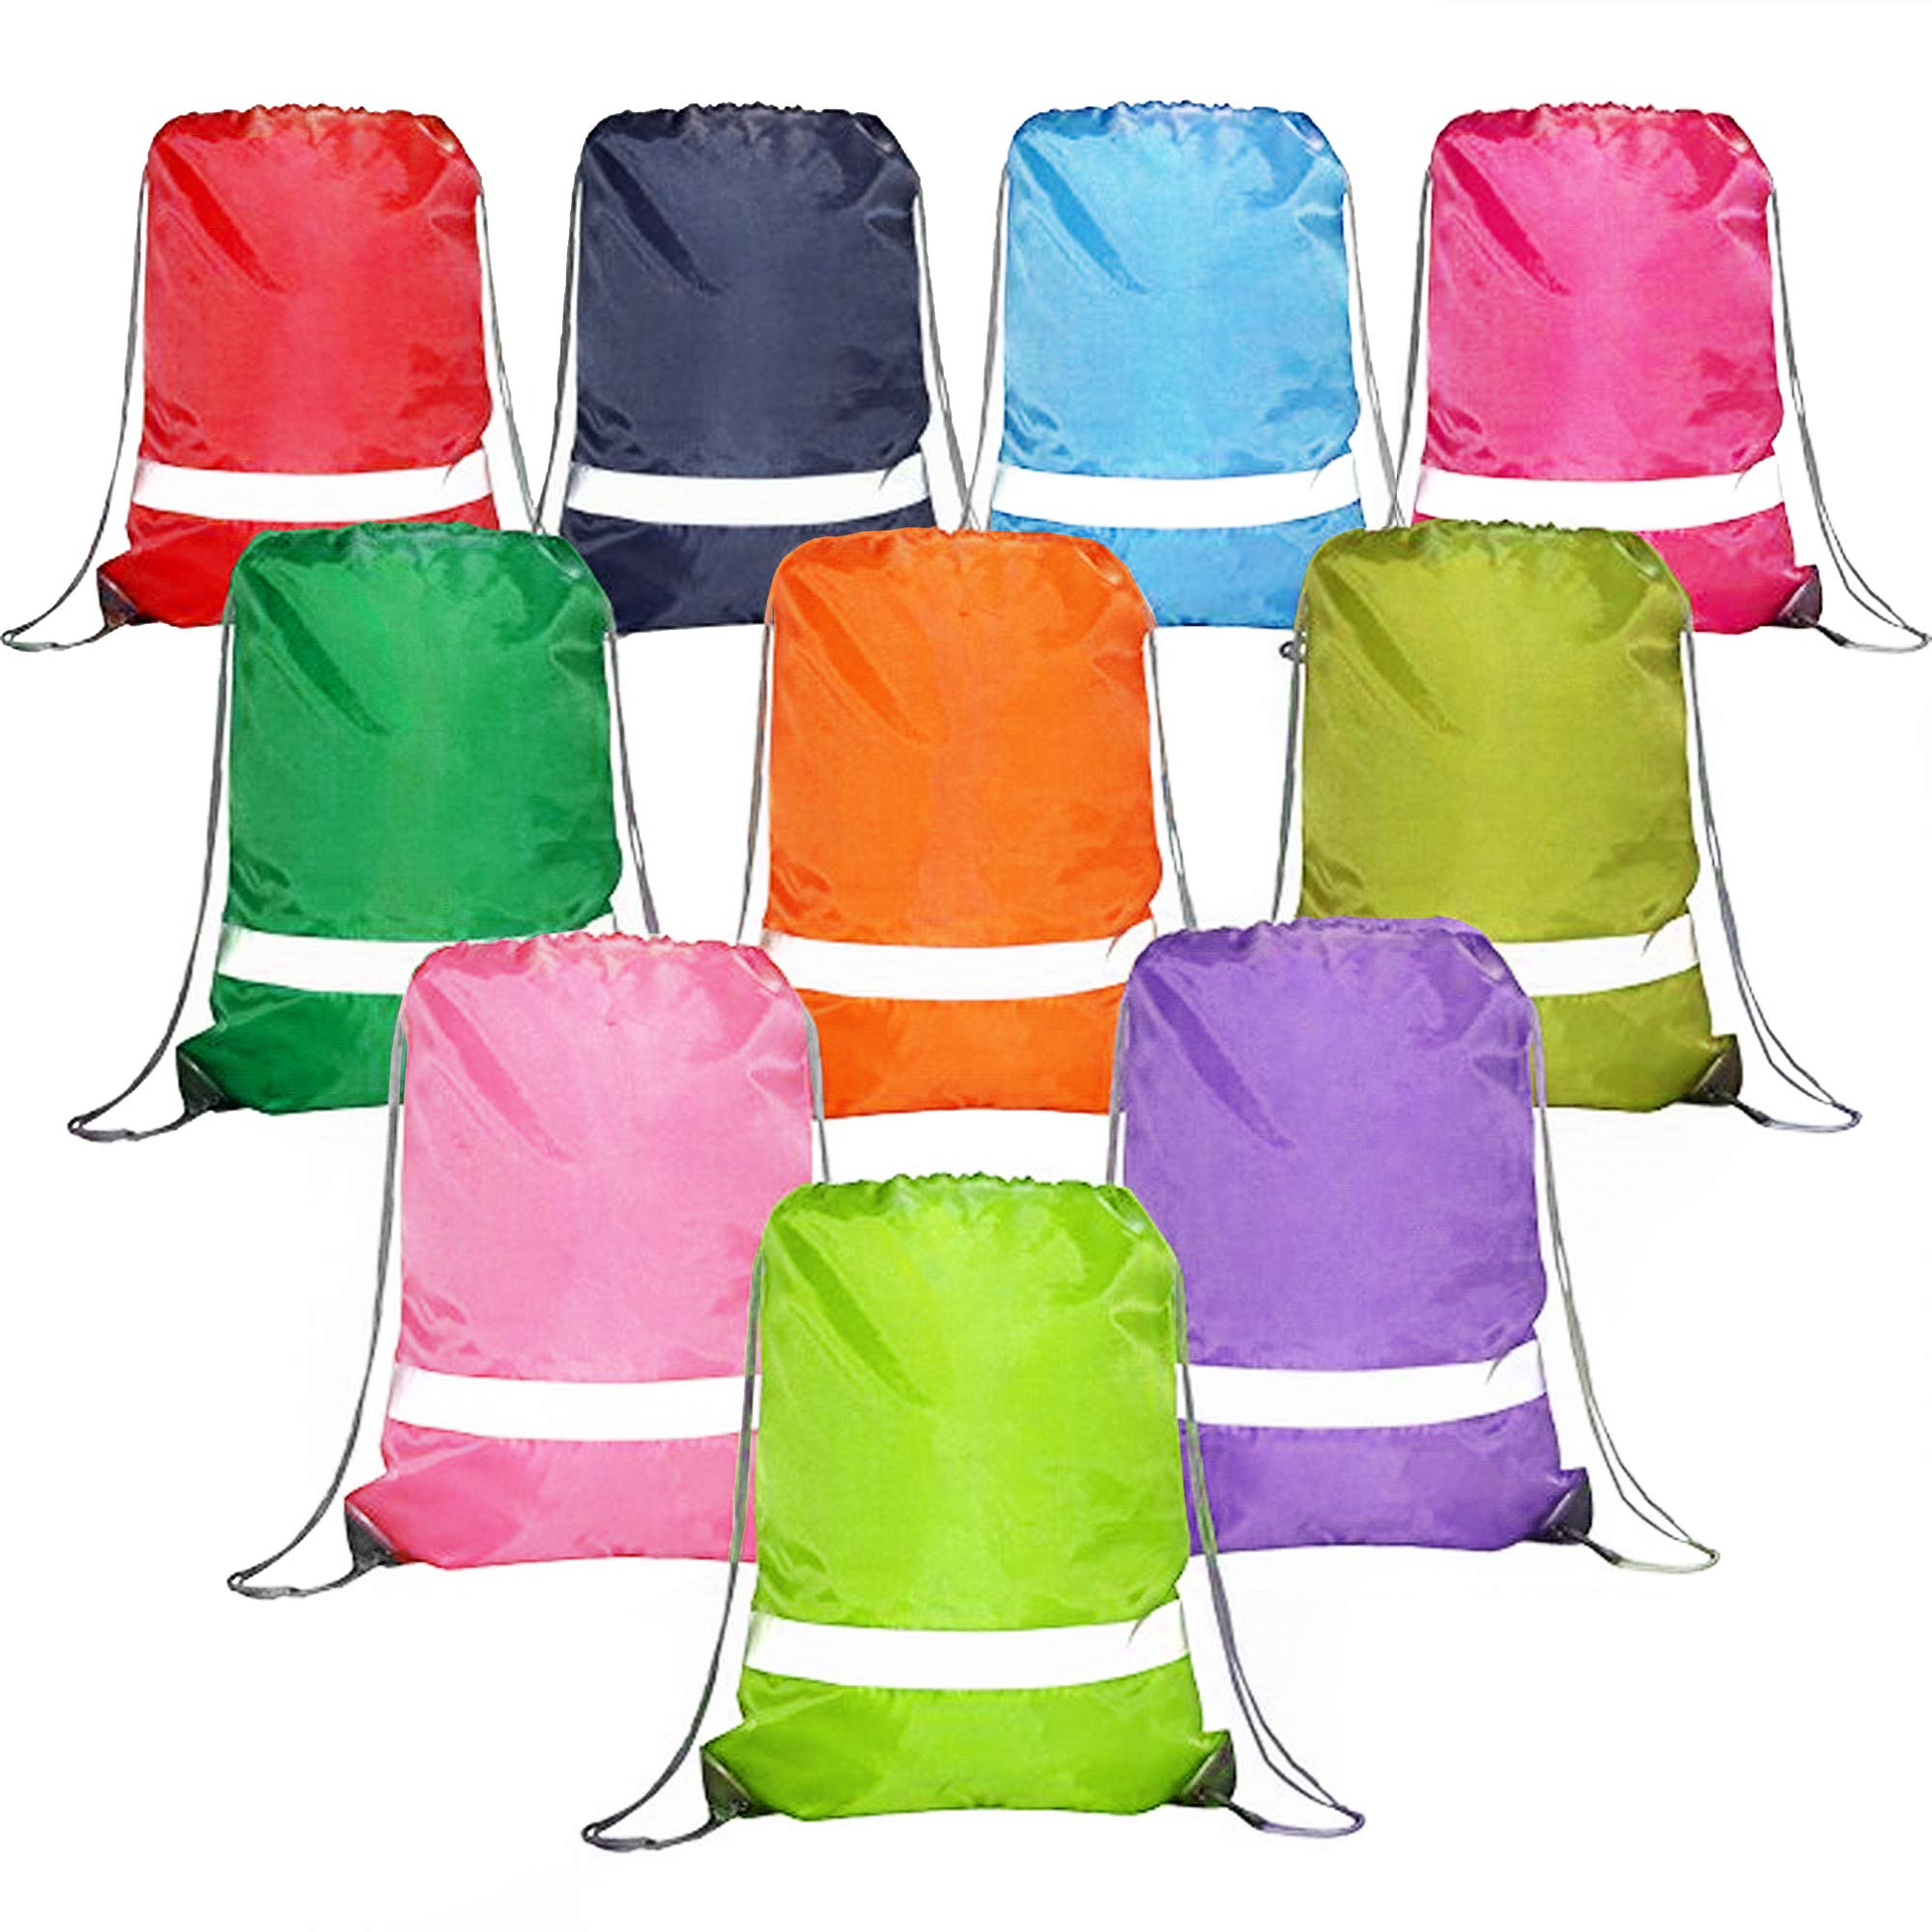 Drawstring Backpack Bags Reflective 10 Pack, Promotional Sport Gym Sackpack Cinch Bag product image